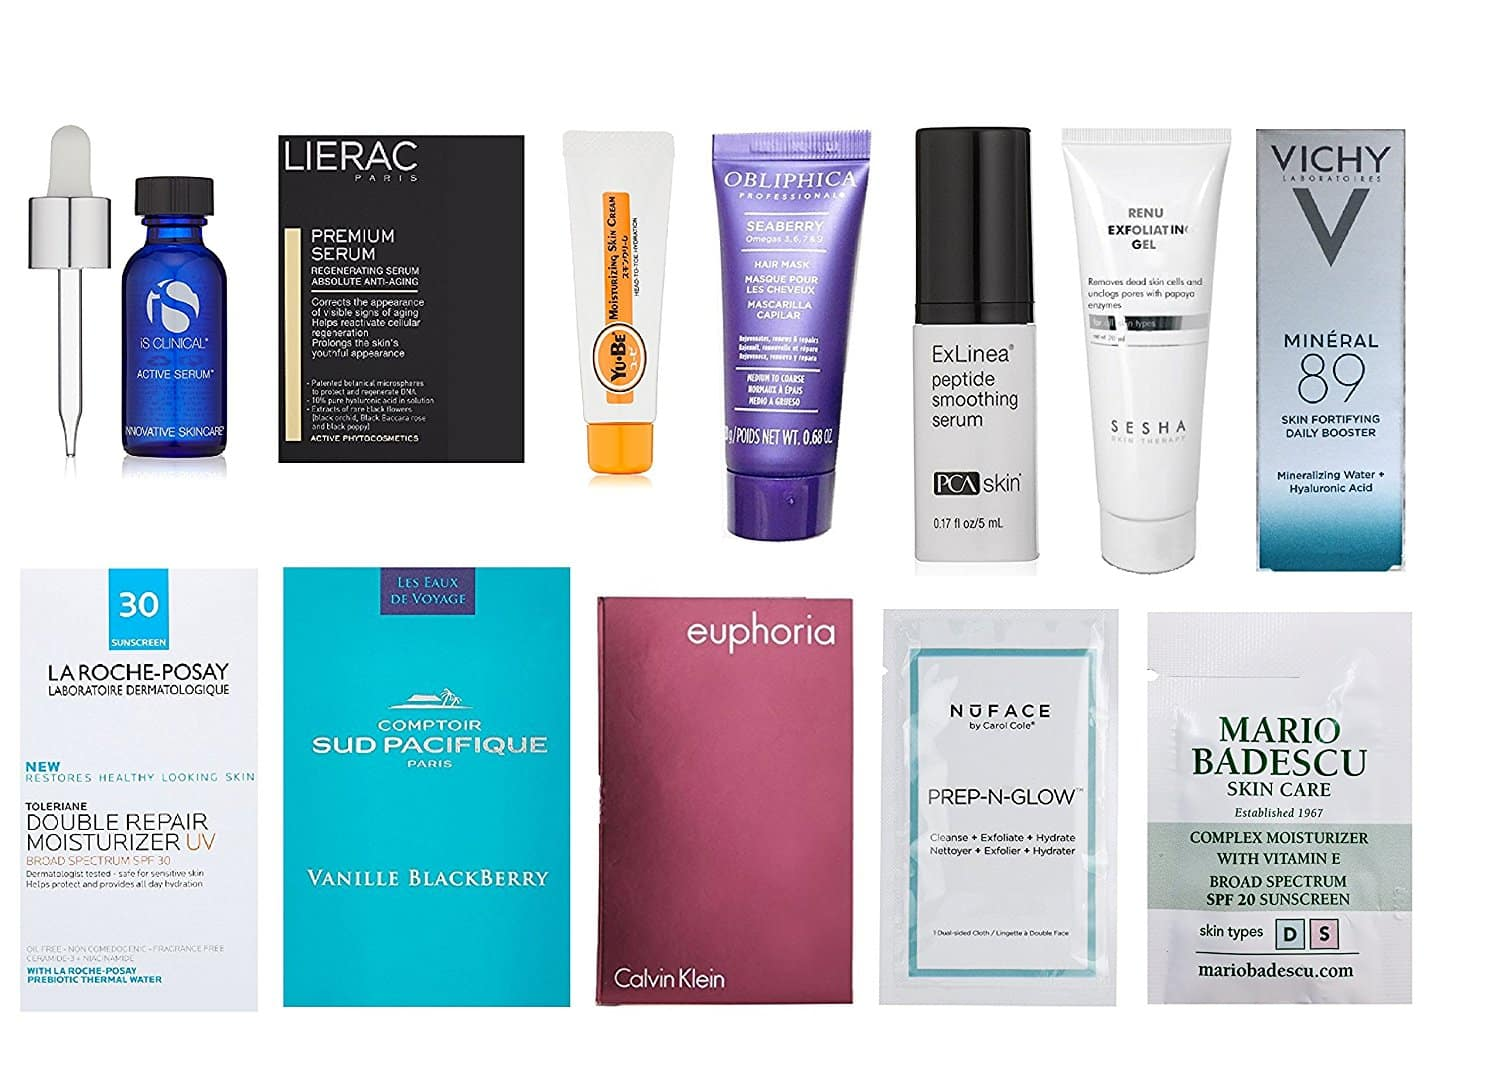 Prime Members: Luxury Skin Care Sample Box Basically Pays For Itself - Luxury Skin Care Sample Box (get a $19.99 credit toward future purchase of select luxury beauty products)